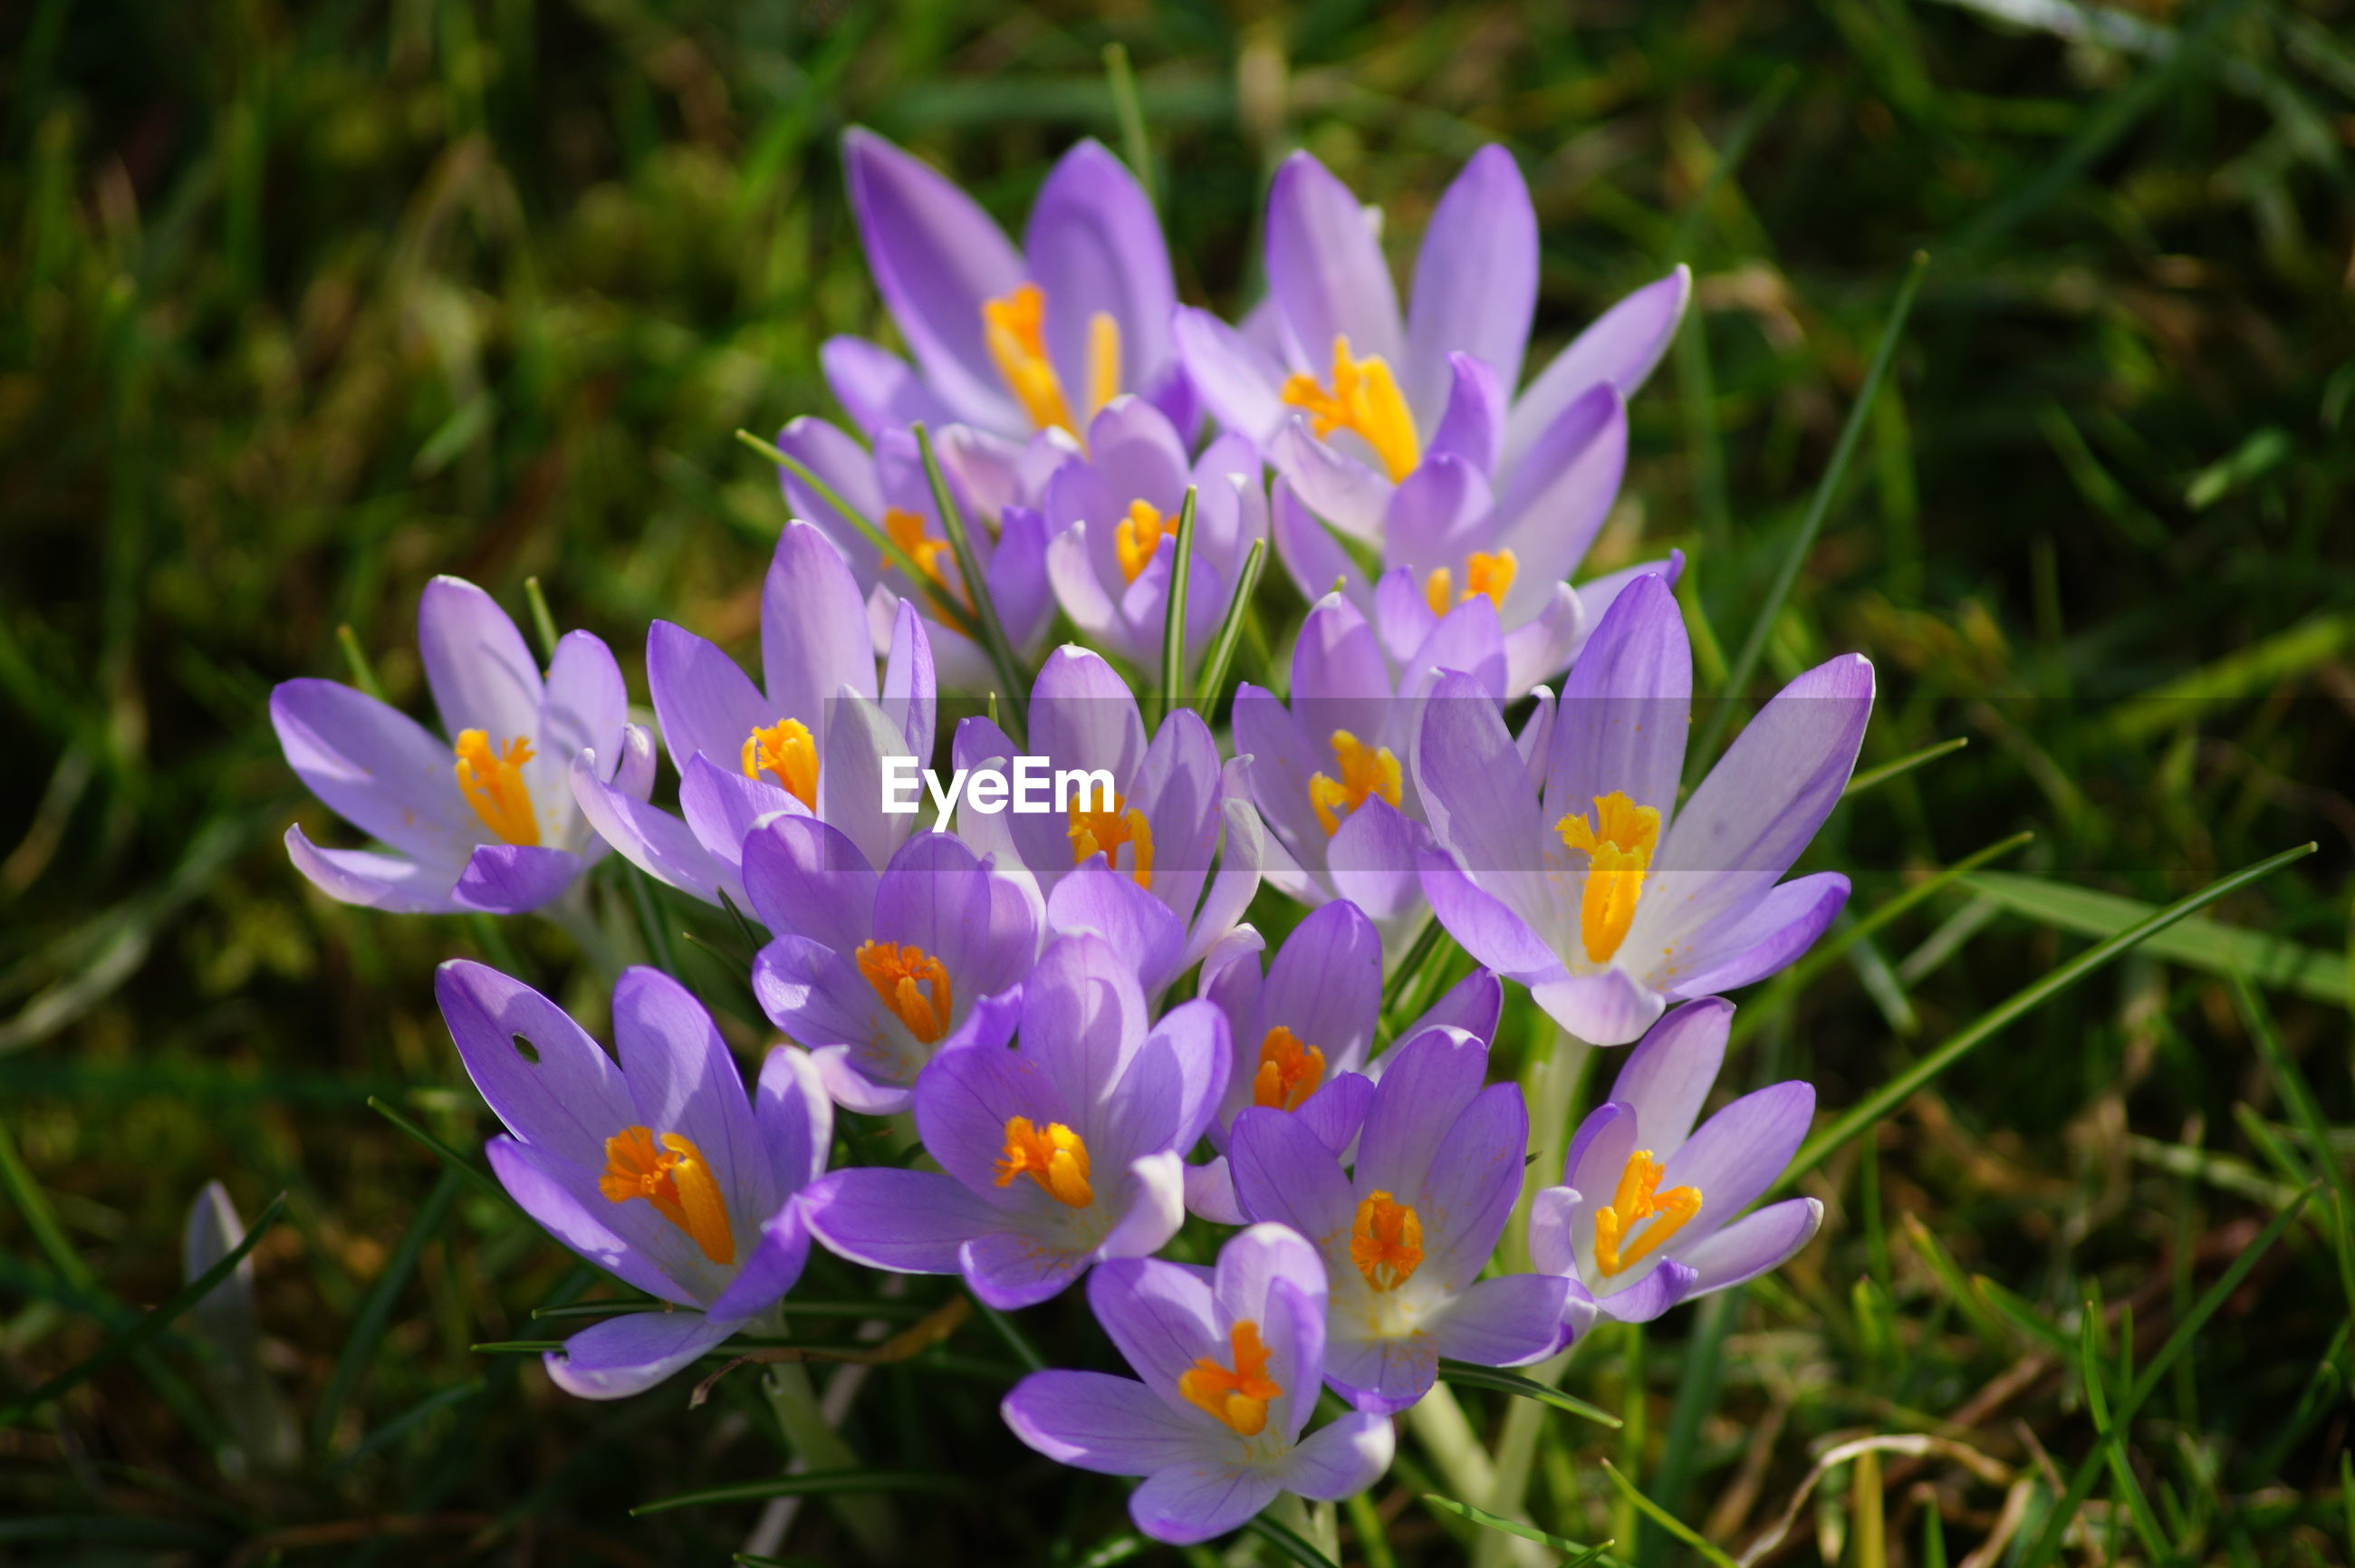 flower, petal, nature, growth, purple, plant, beauty in nature, fragility, freshness, flower head, focus on foreground, blooming, outdoors, no people, day, close-up, crocus